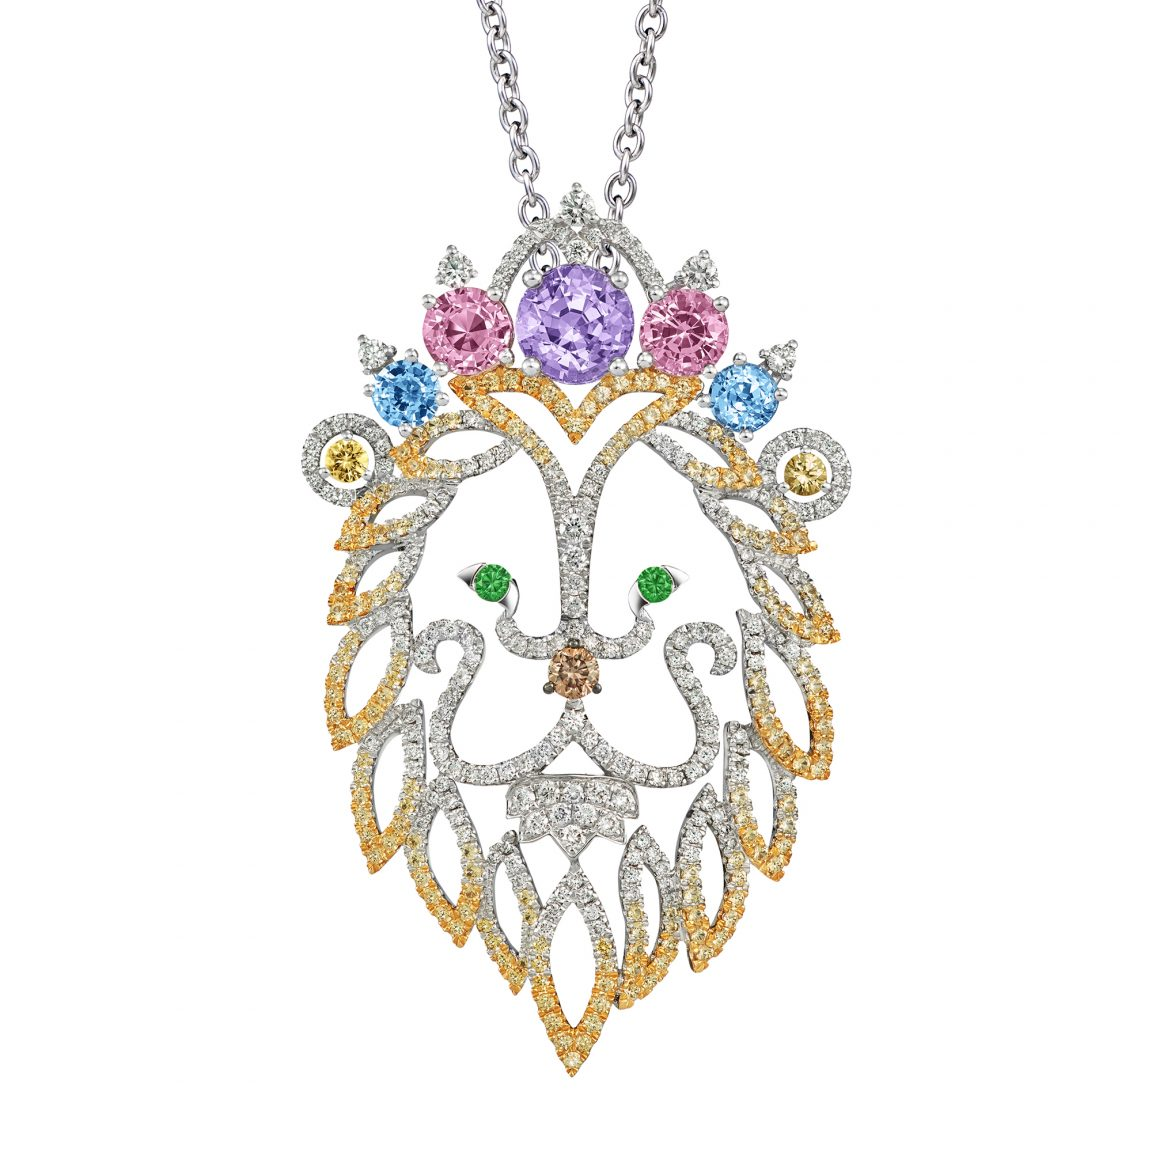 The Reigning Leo Pendant Necklace